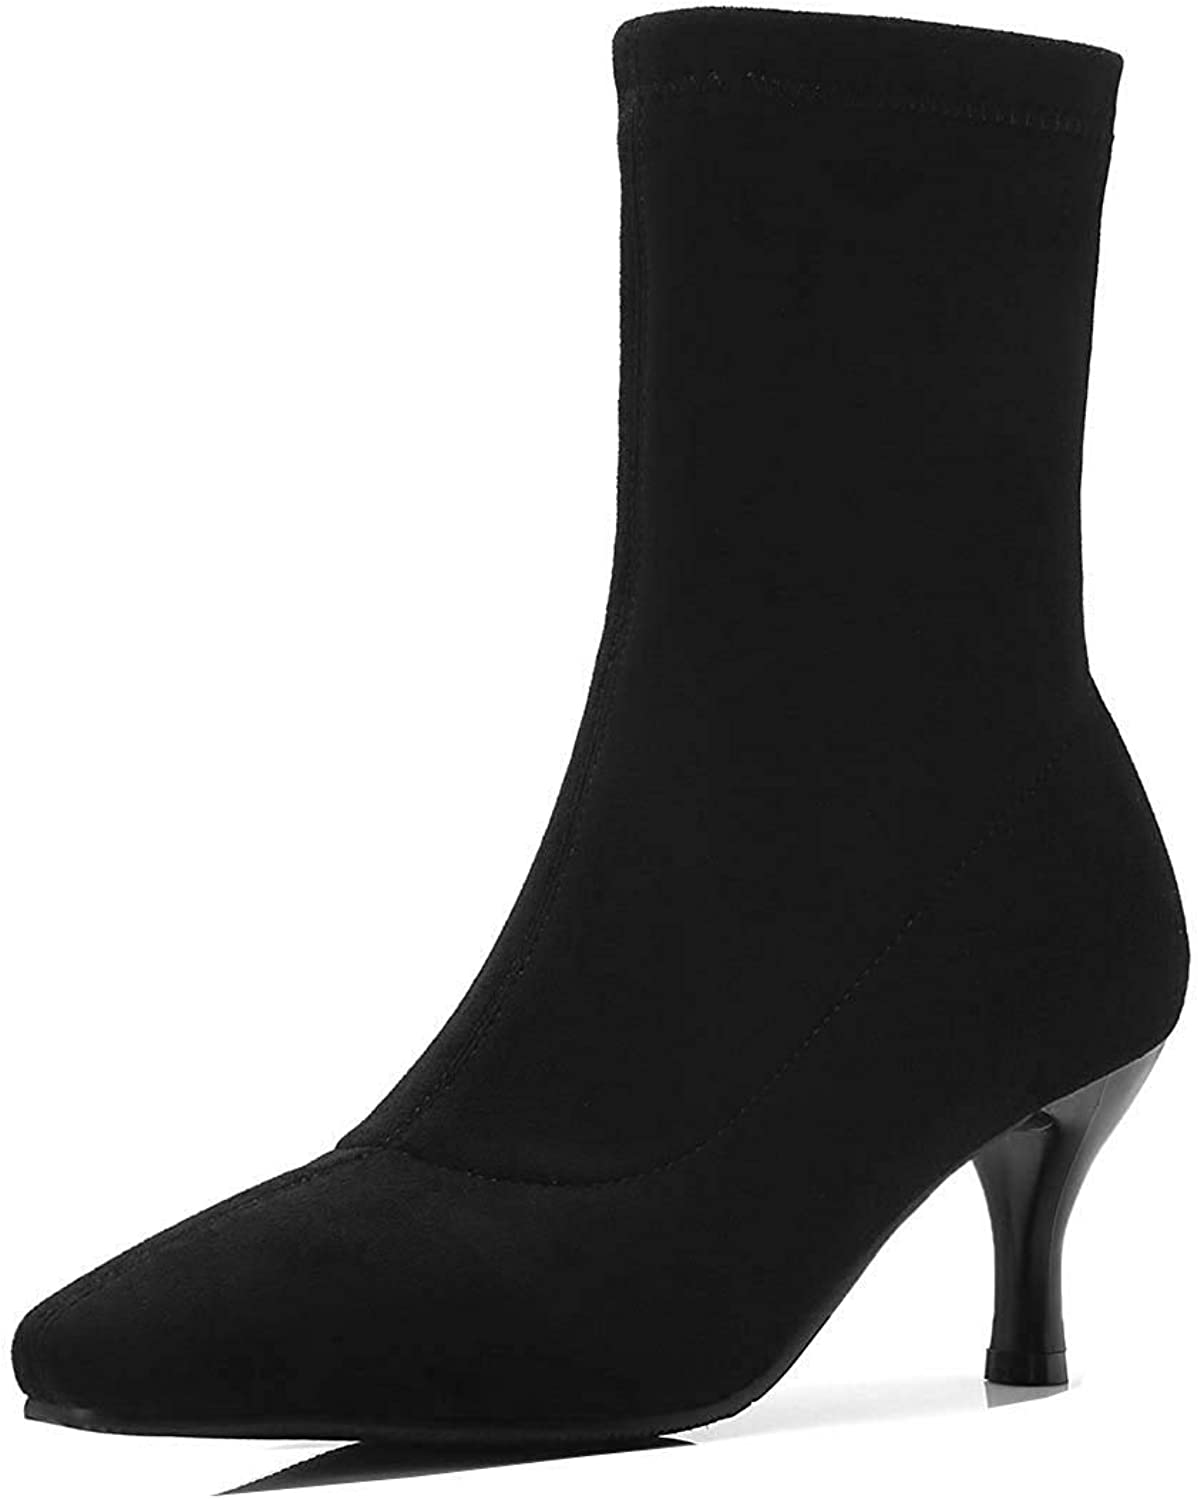 Unm Women's Simple Elegant Faux Suede Pull On Pointed Toe Stiletto Kitten Heel Dress Mid Calf Boots